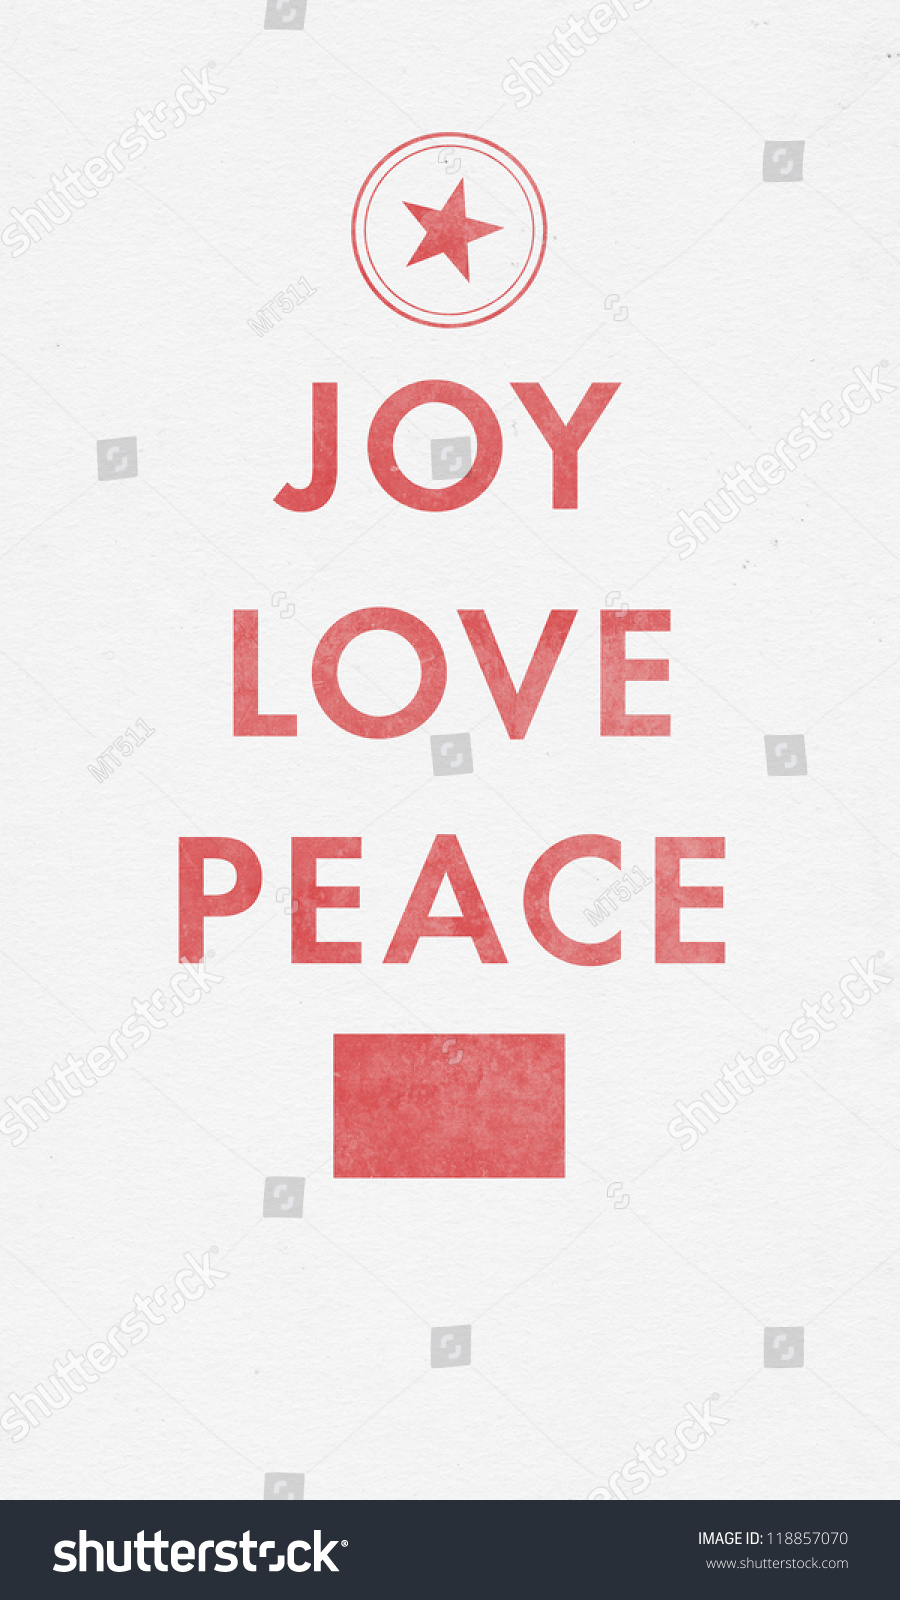 joy love peace letterpress christmas card - How To Sign A Christmas Card